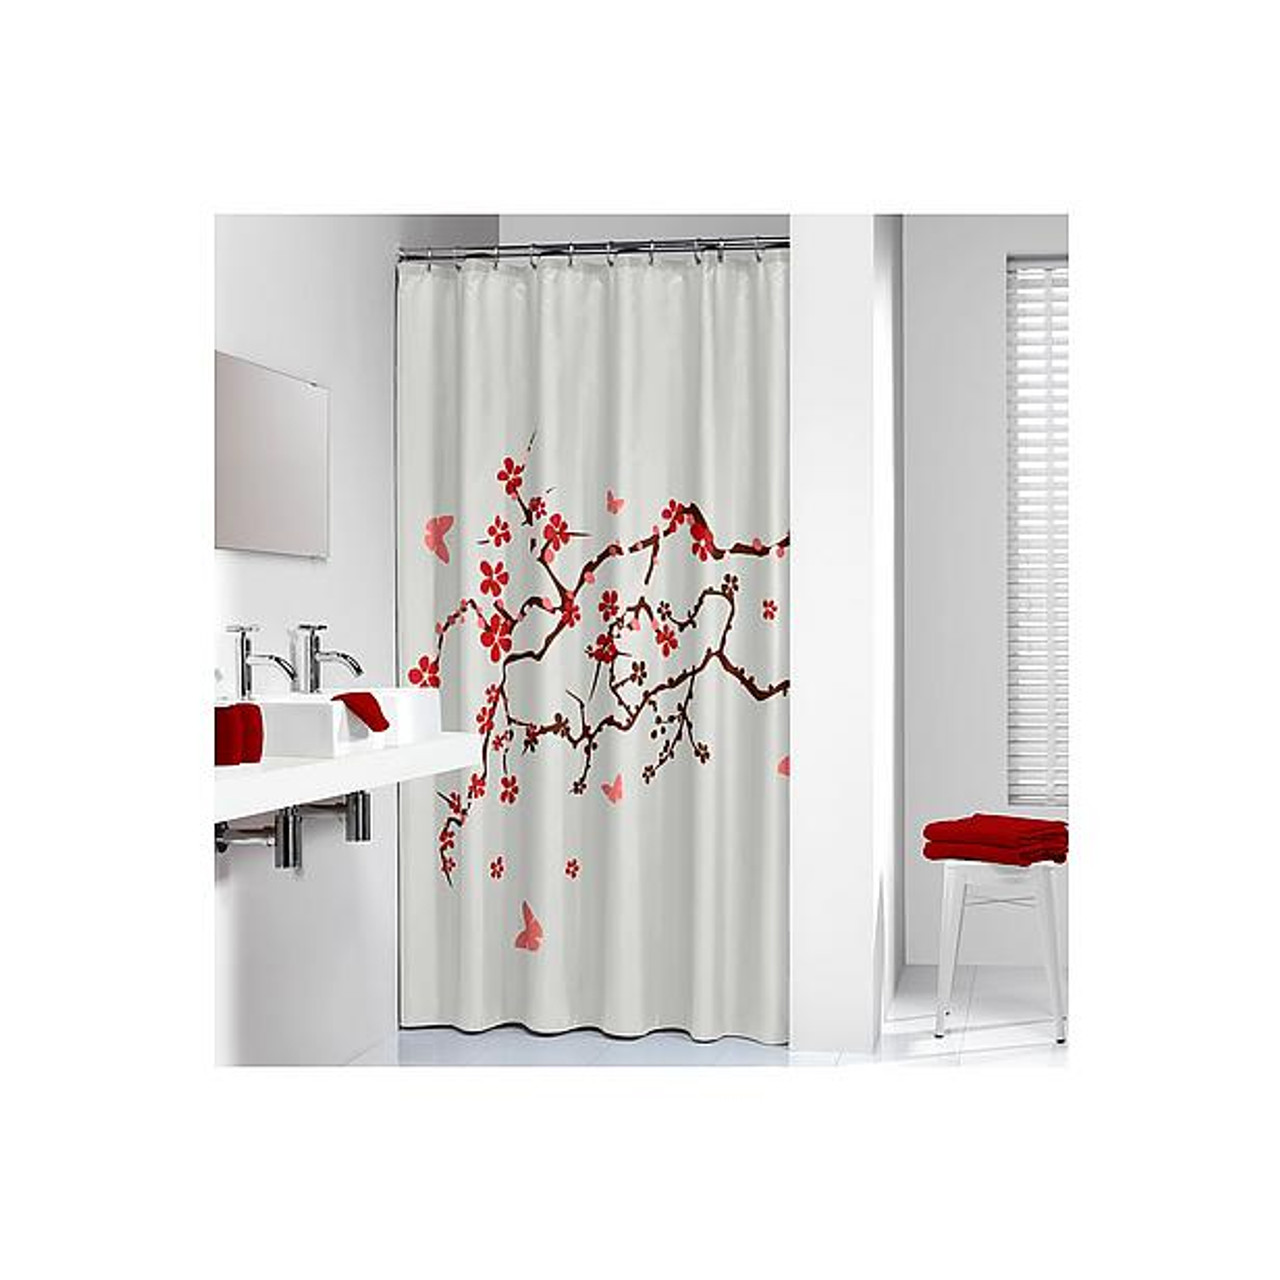 extra long shower curtain 72 x 78 inch